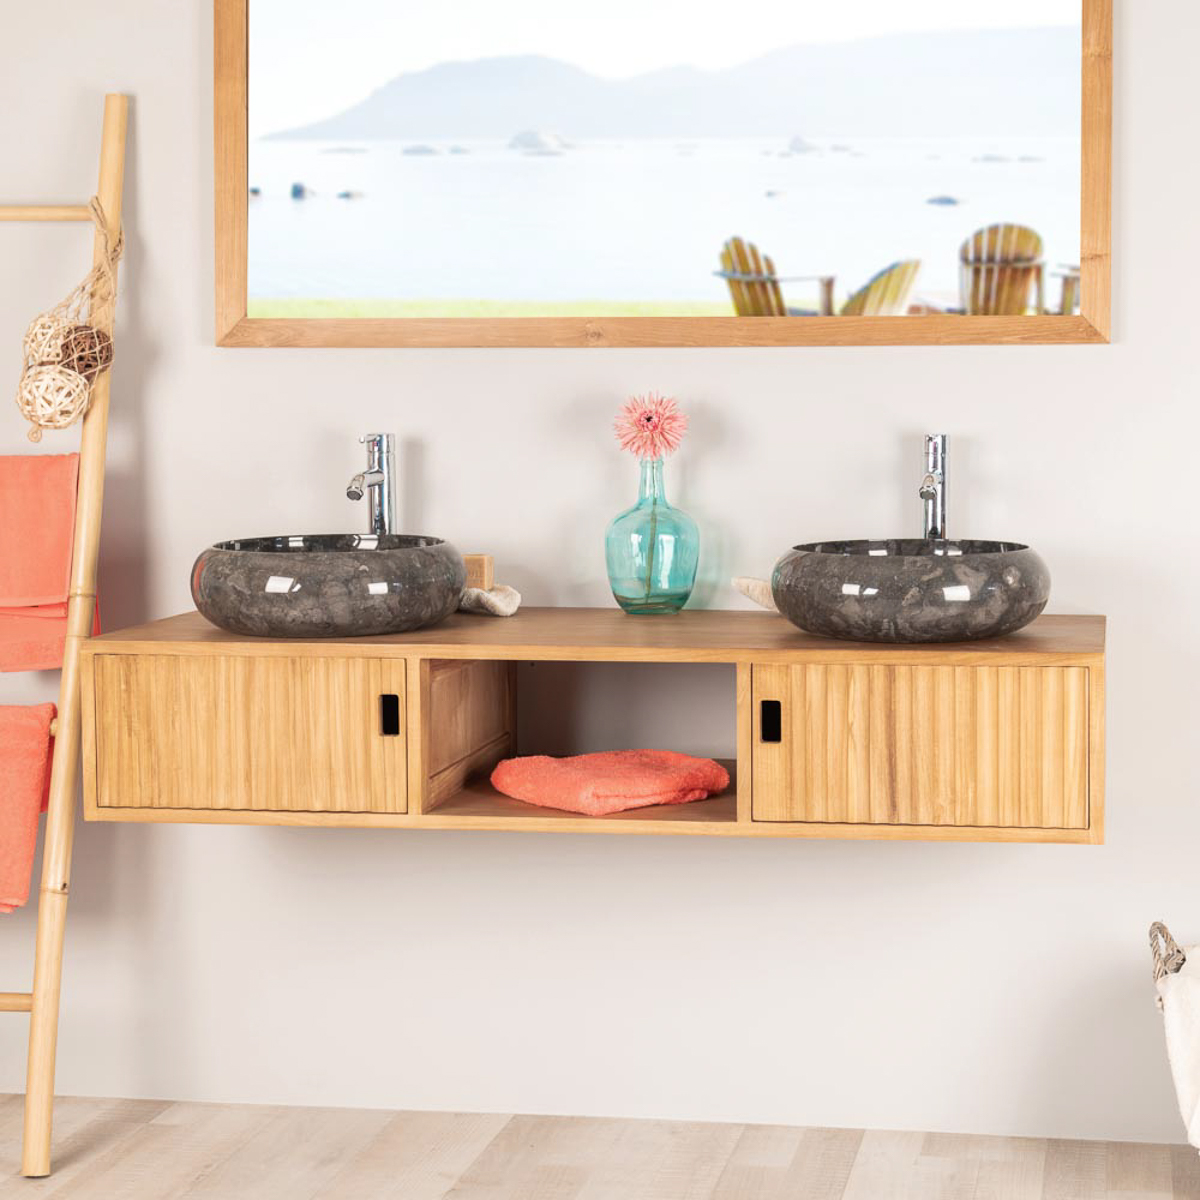 Los articulos de la pagin wanda collection for Mueble de bano doble lavabo de madera